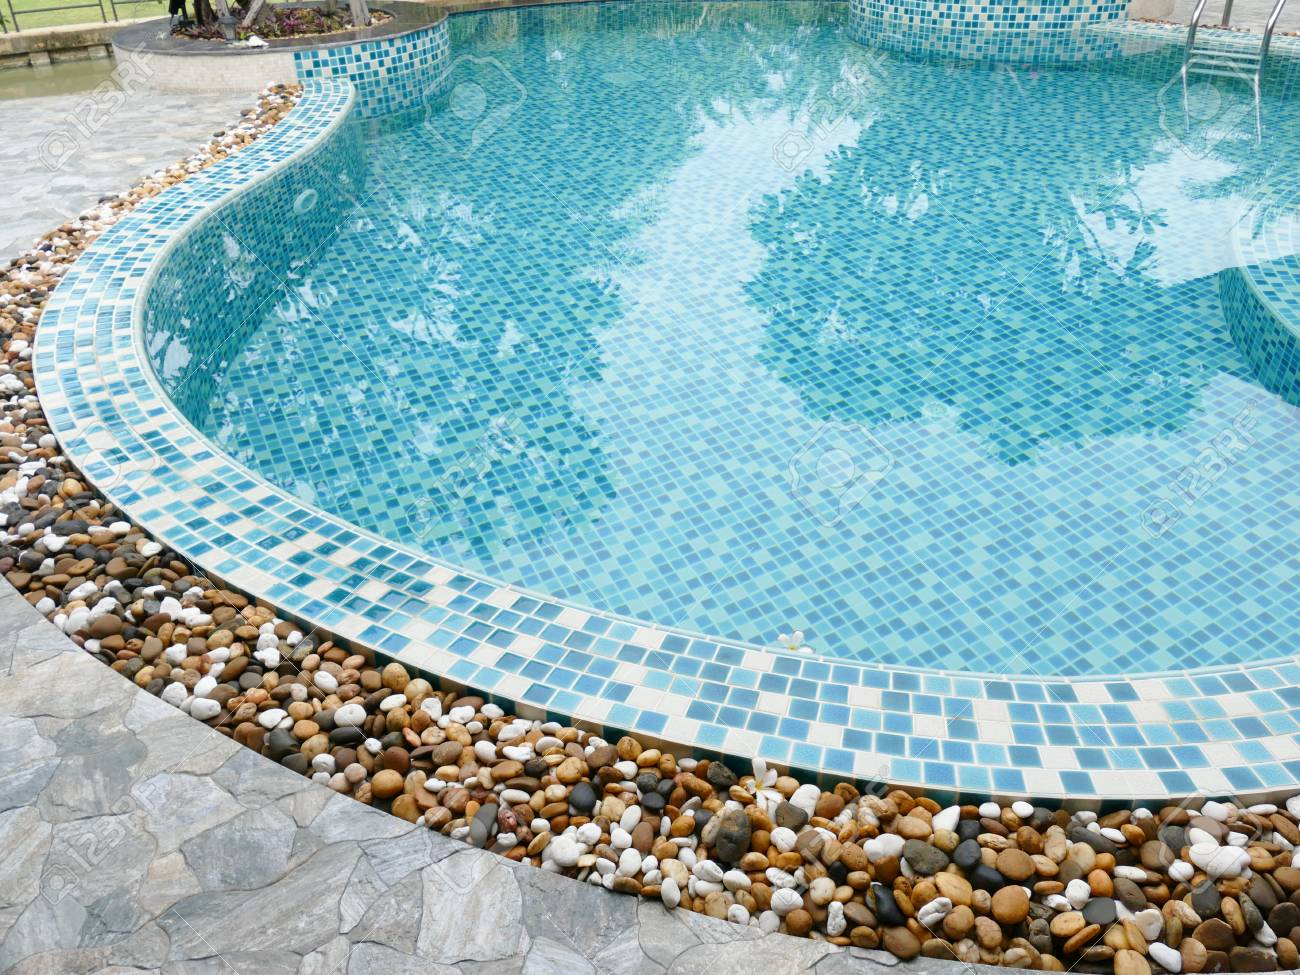 Small Stone Decorating On The Edge Of The Swimming Pool Stock Photo Picture And Royalty Free Image Image 43099036